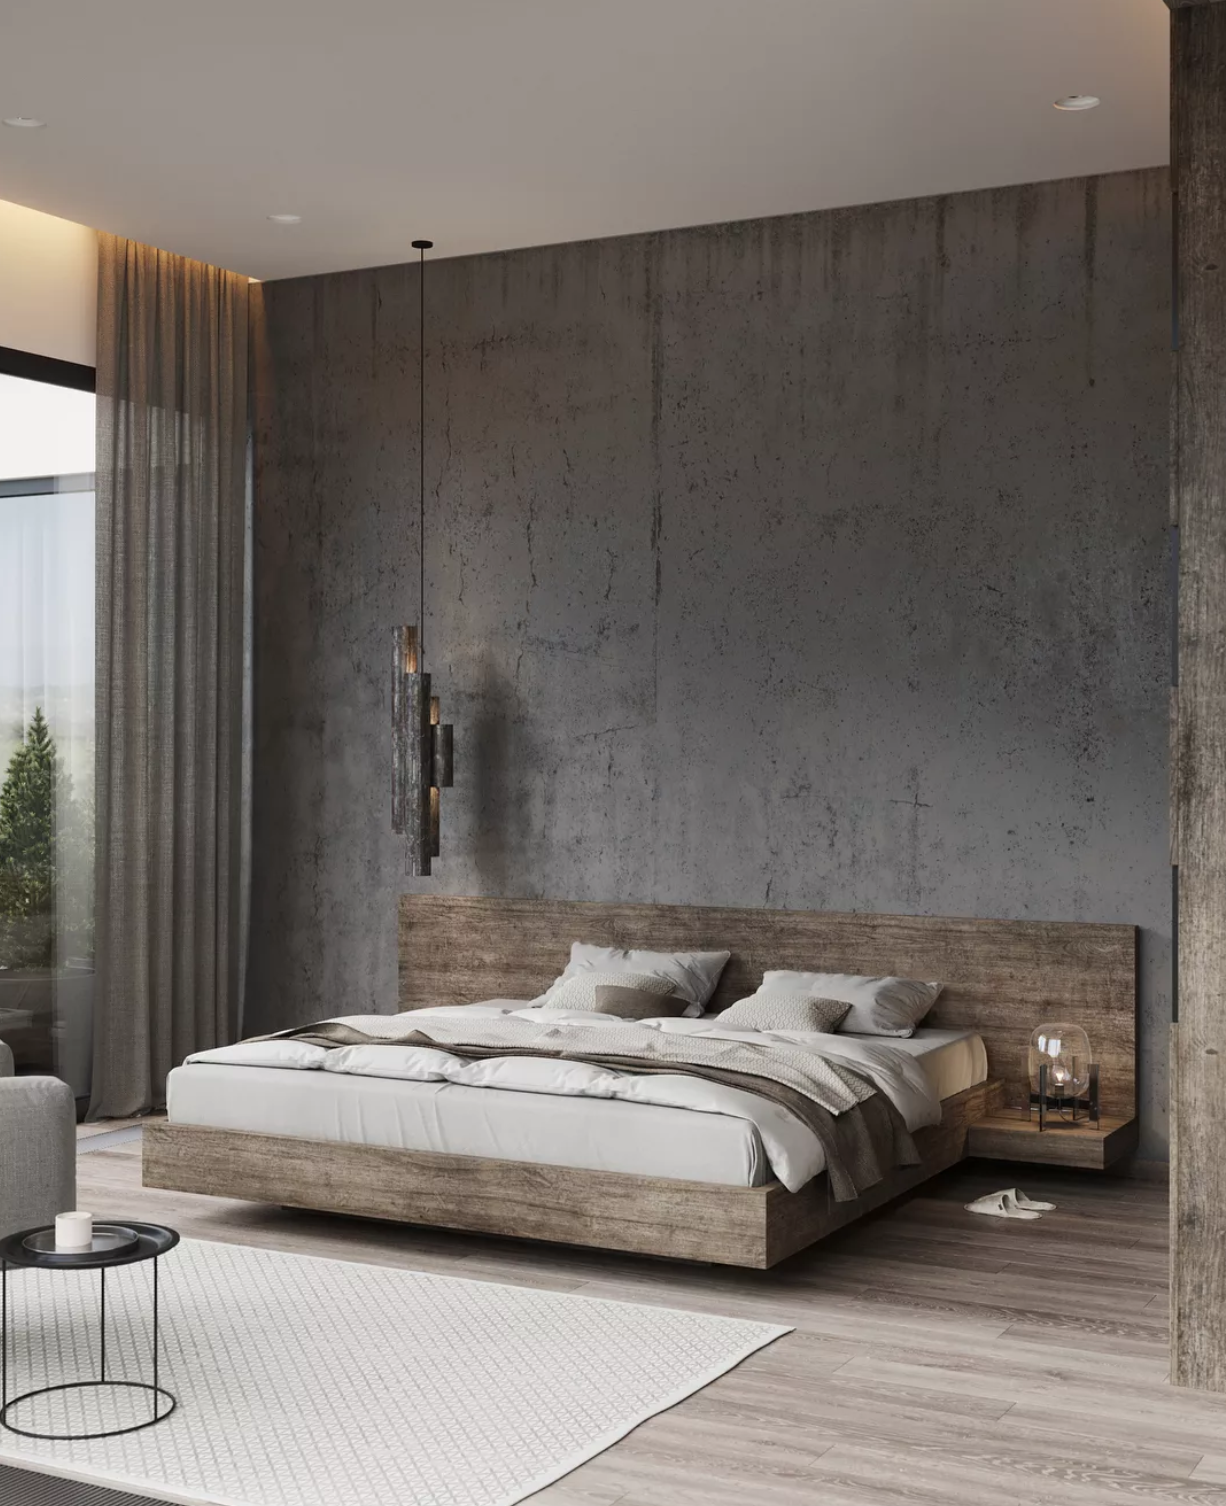 The 15 Most Beautiful Master Bedrooms on Pinterest ...